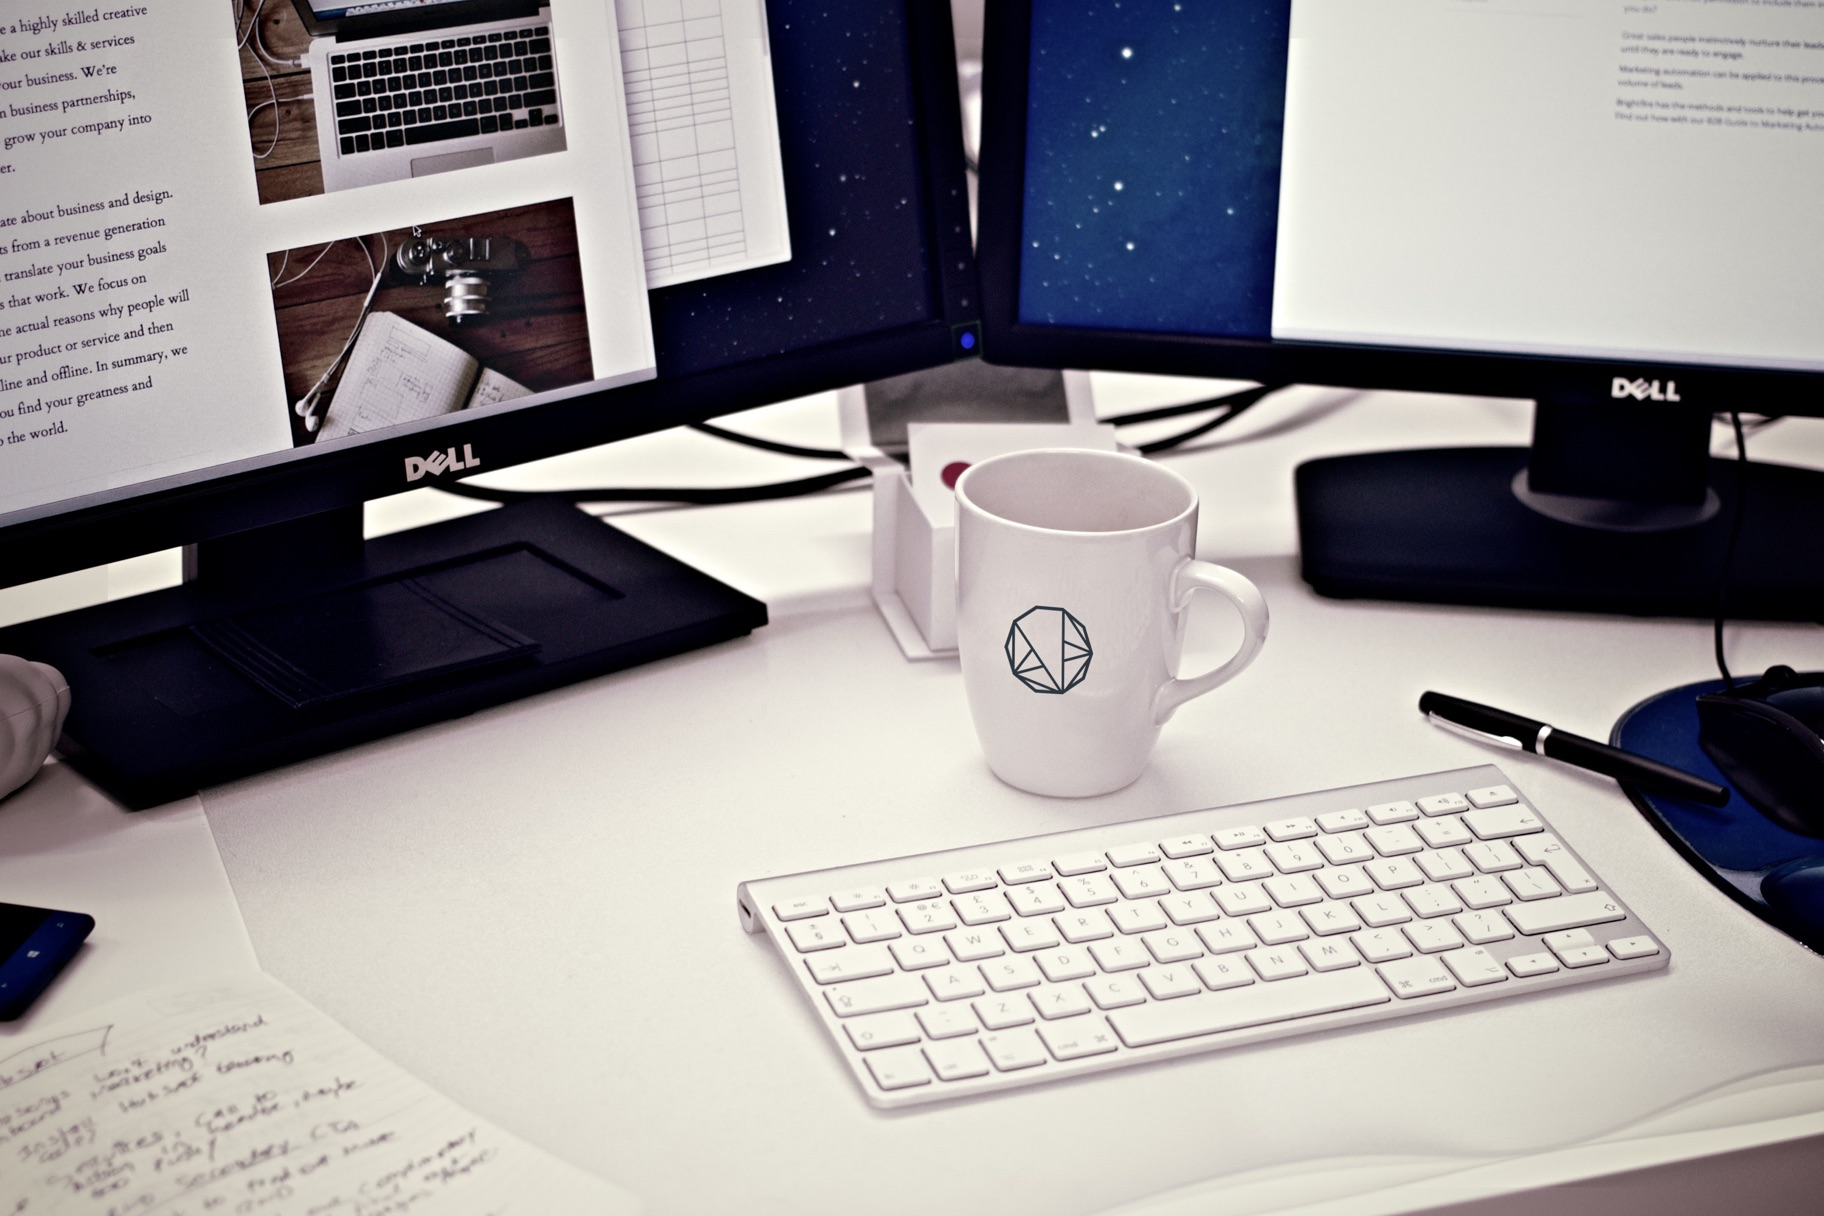 Top 9 Ruby Articles to Improve Your Web Development